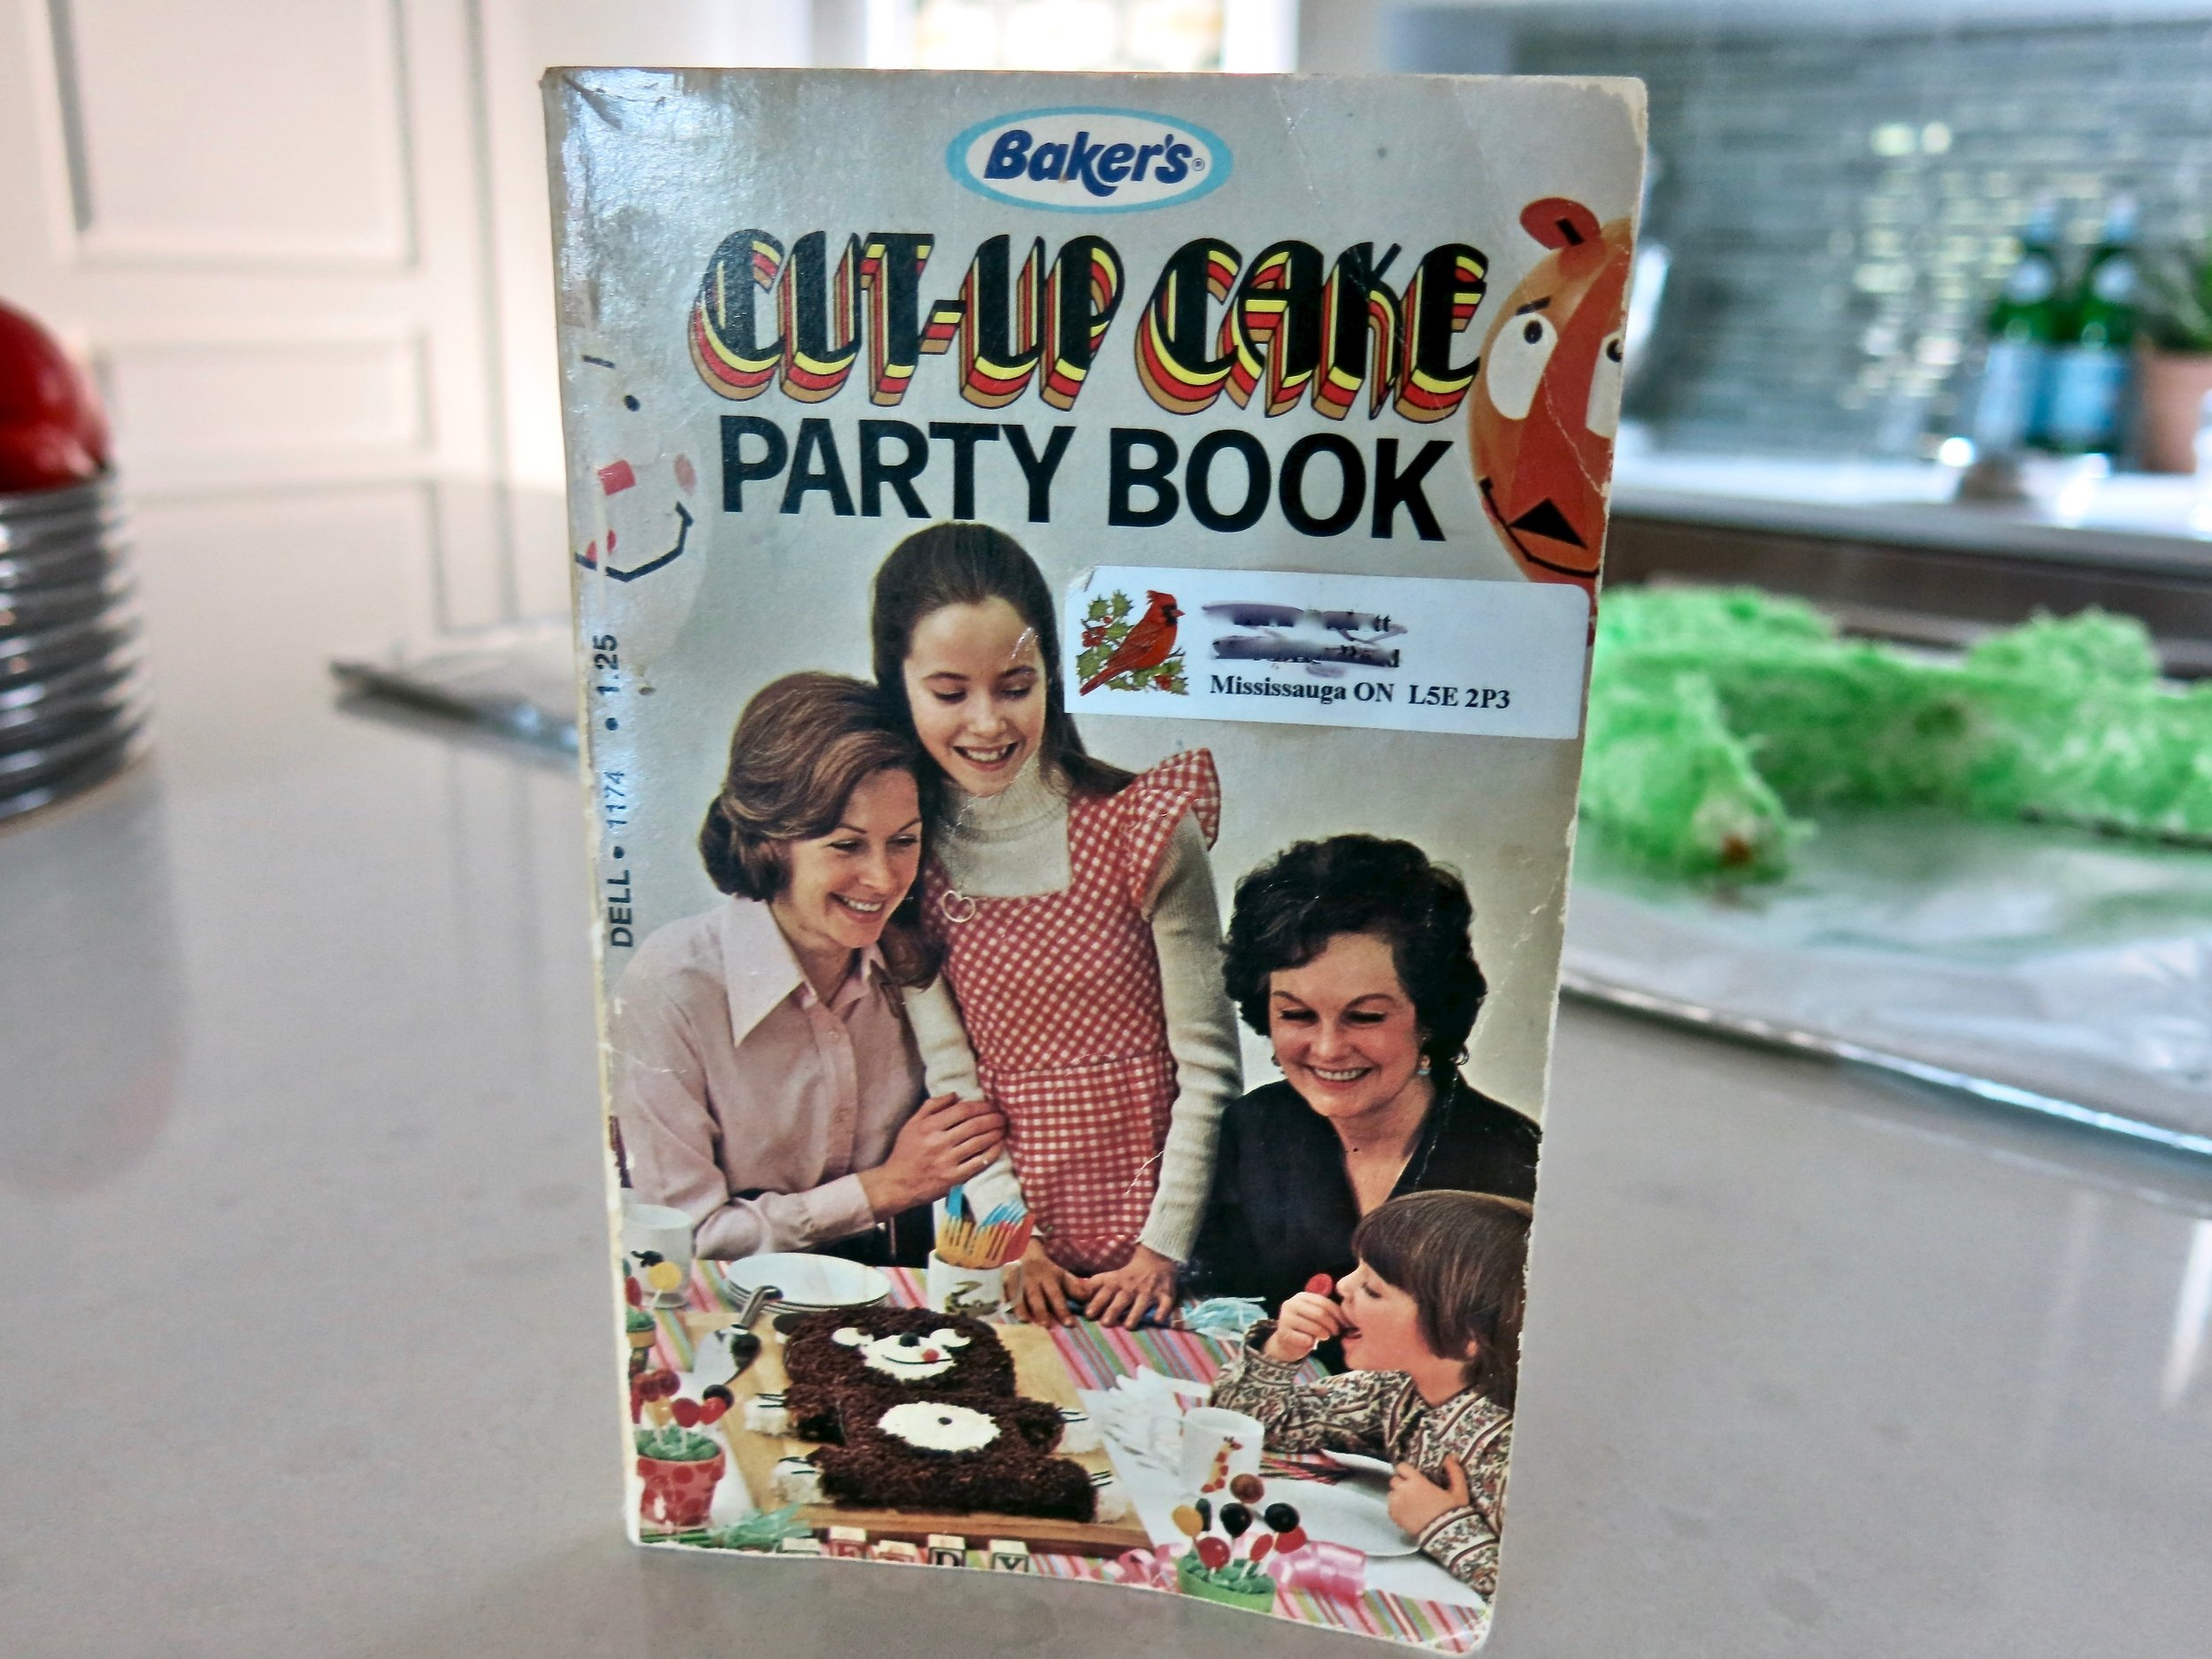 Here's my Cut-Up Cake Party Book. People were happier in the 70s, as you can tell.